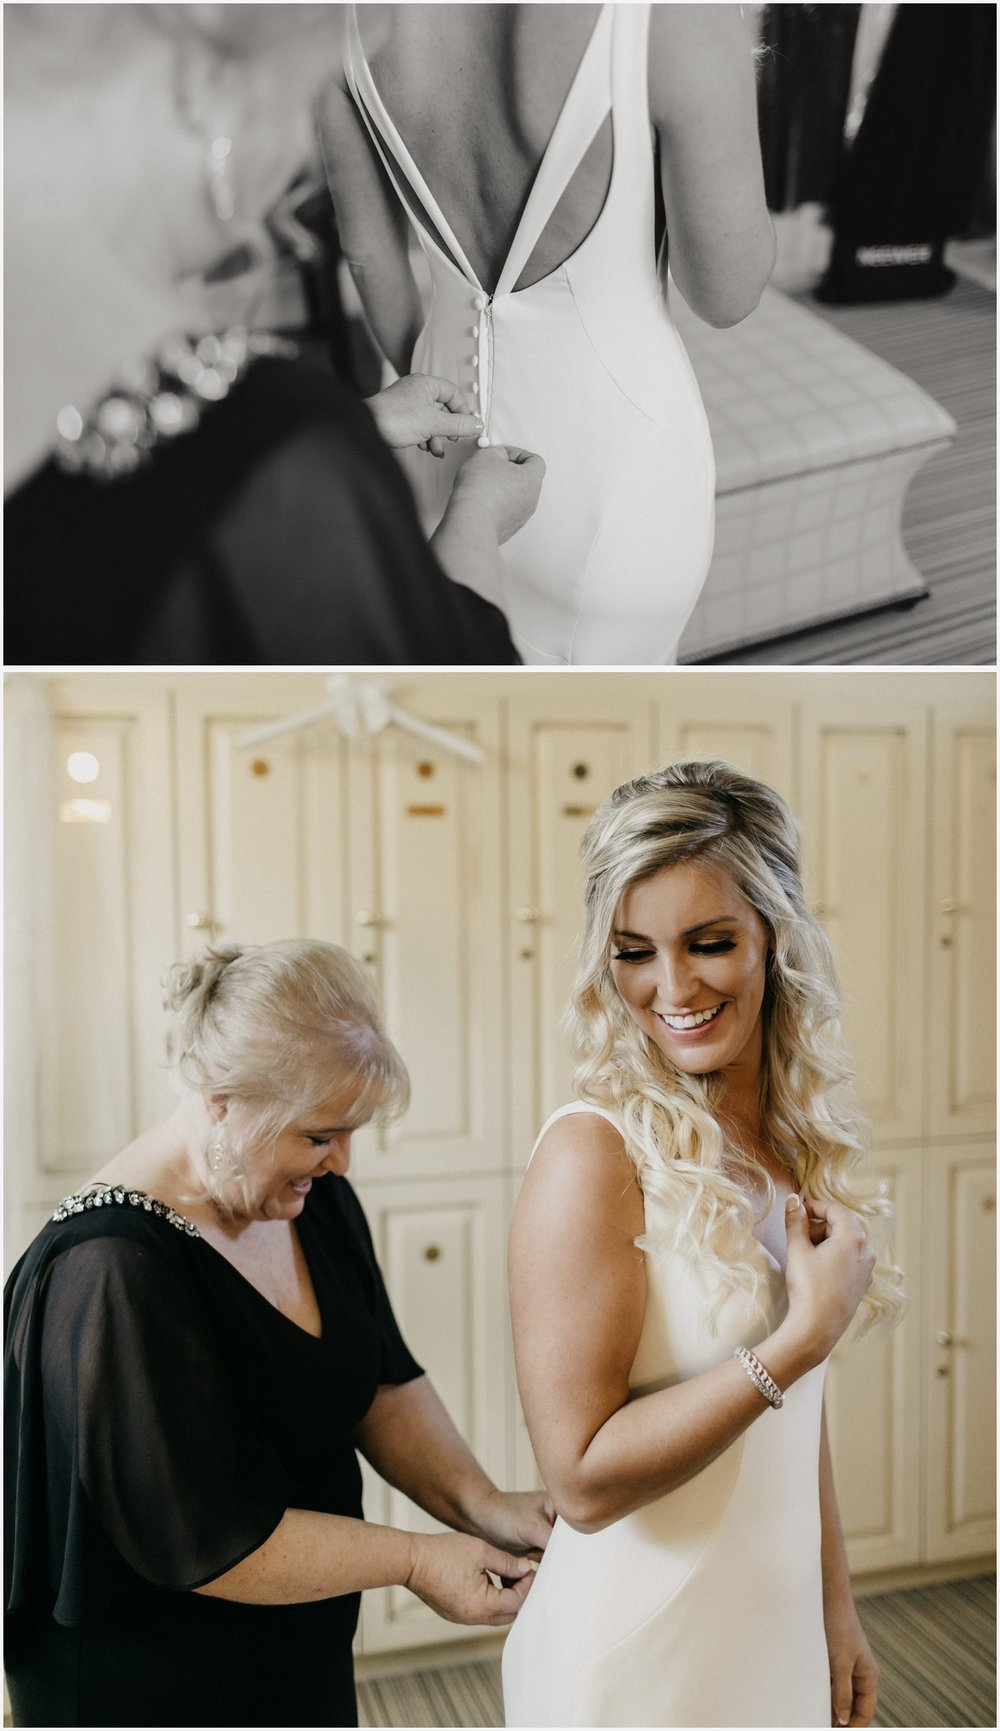 Mom helping bride get ready at the Shark's Tooth Golf Club